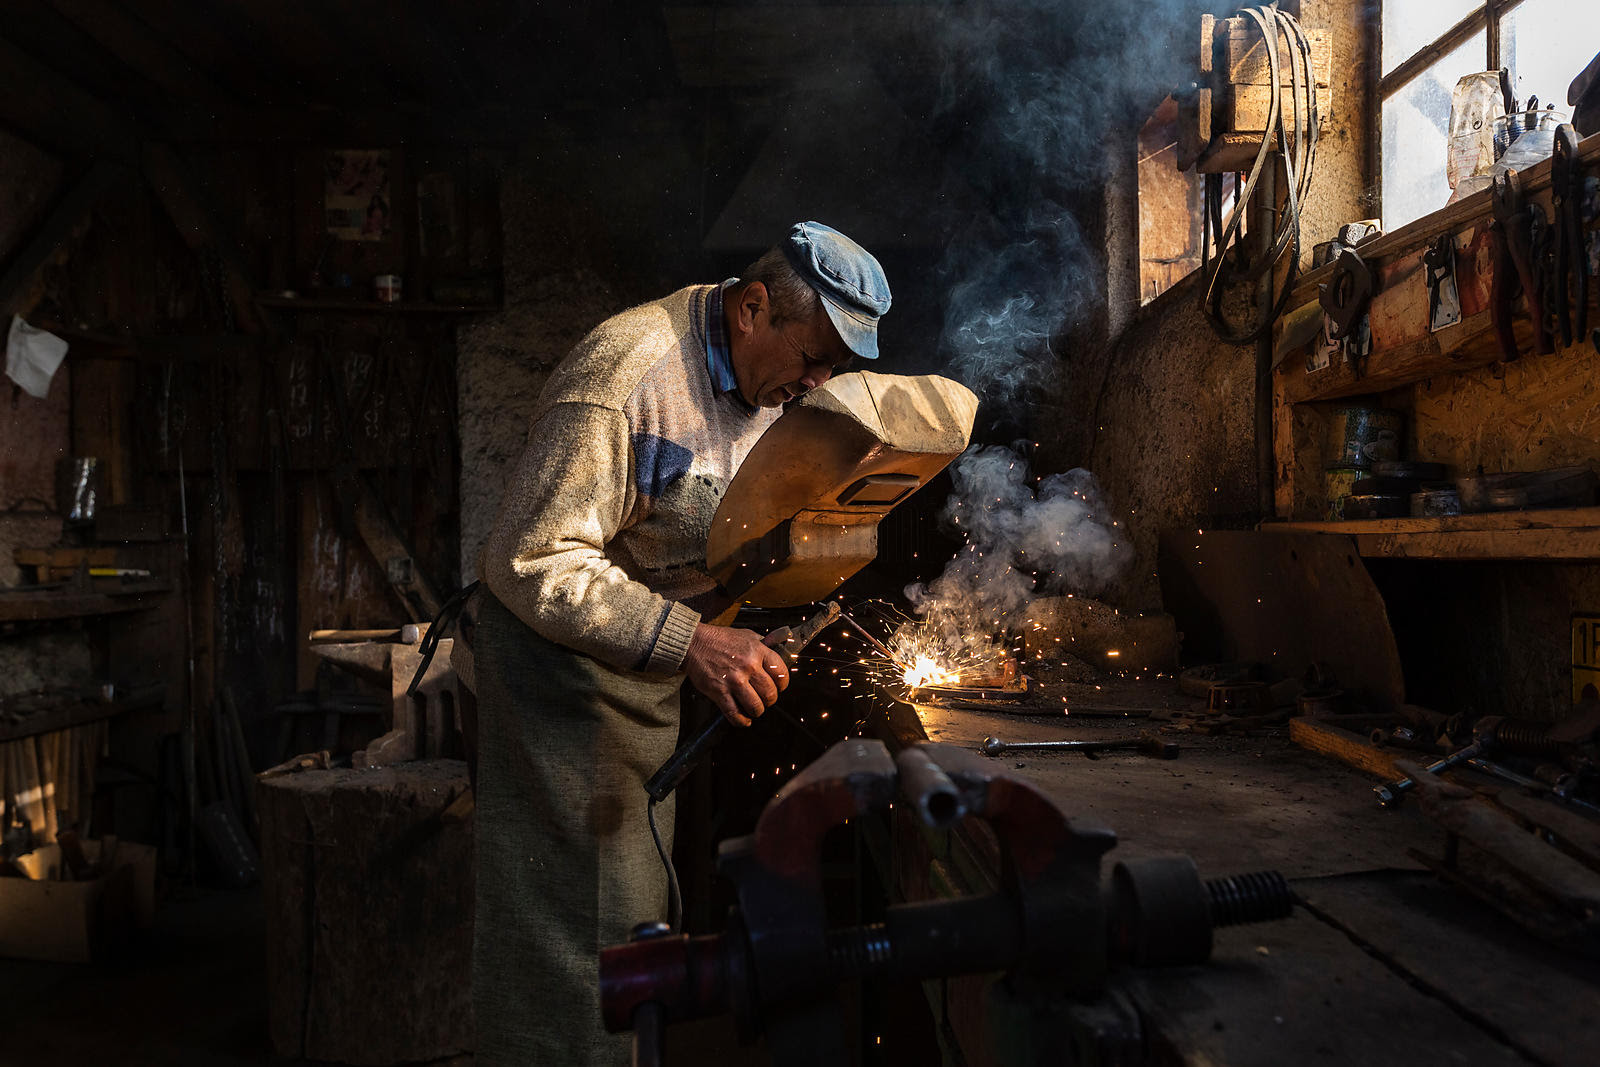 Where In The World Lifestyle Culture Landscapes Cityscapes Wildlife Travel Portrait Of A Blacksmith Using A Welder In His Forge Photo Tours